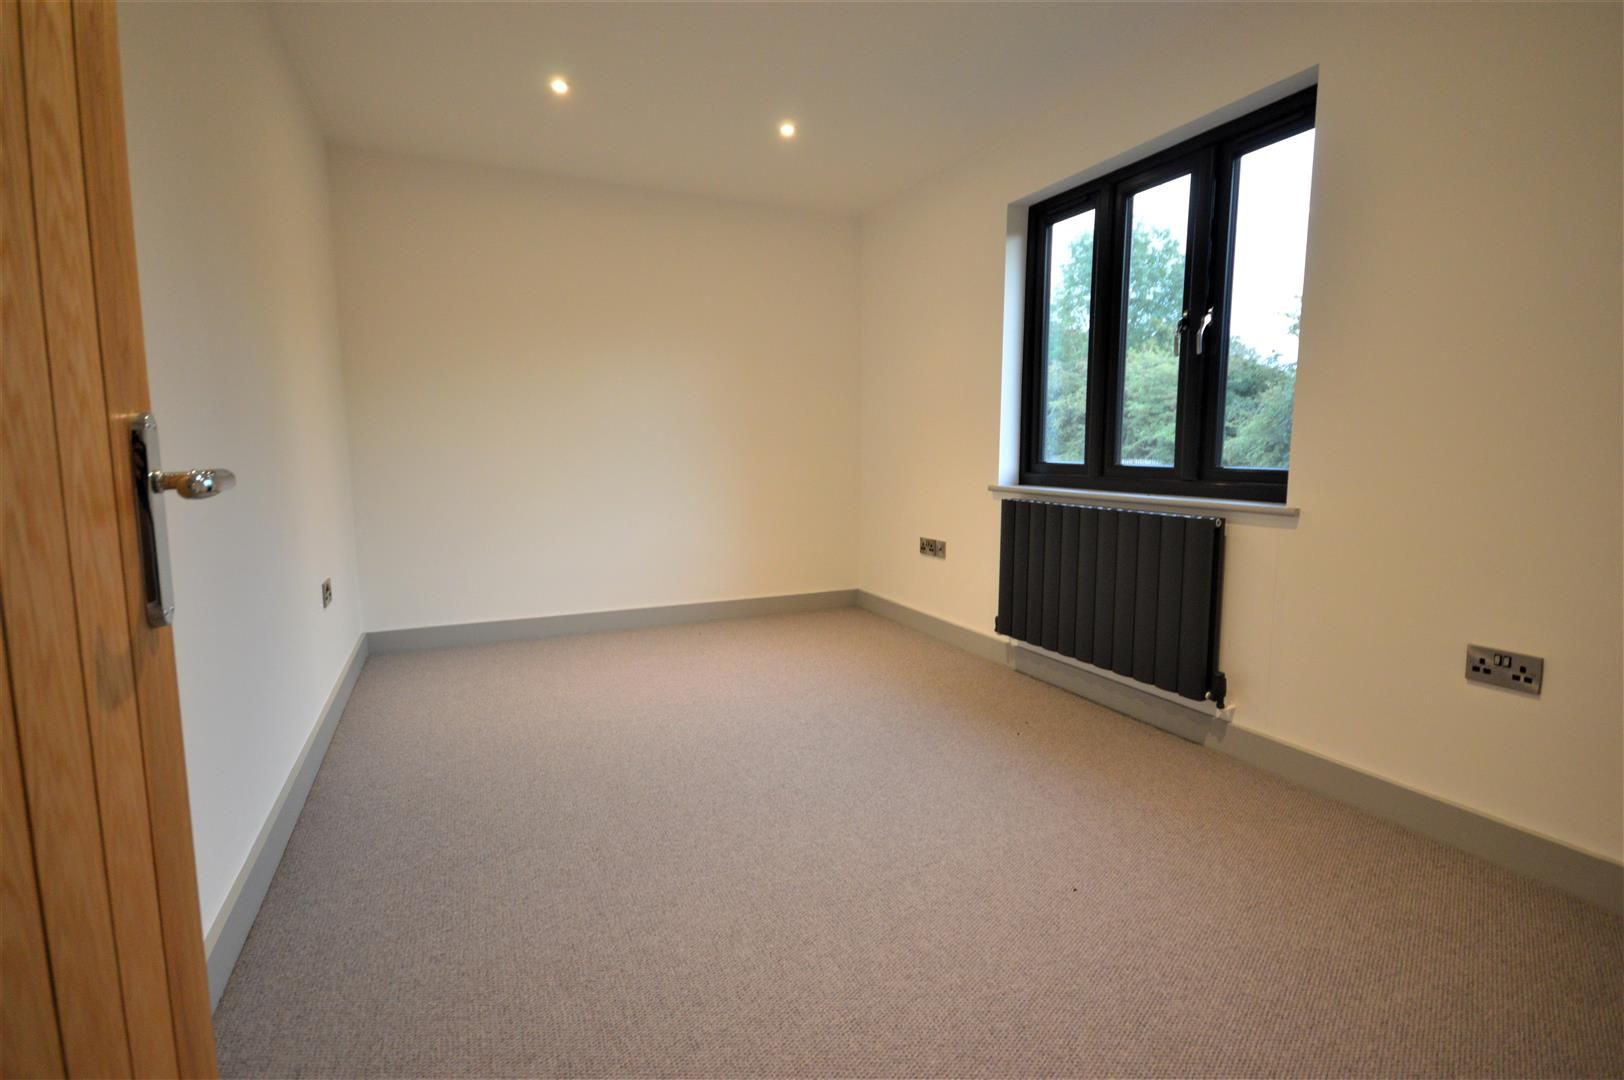 4 bed detached for sale in Brimfield 11